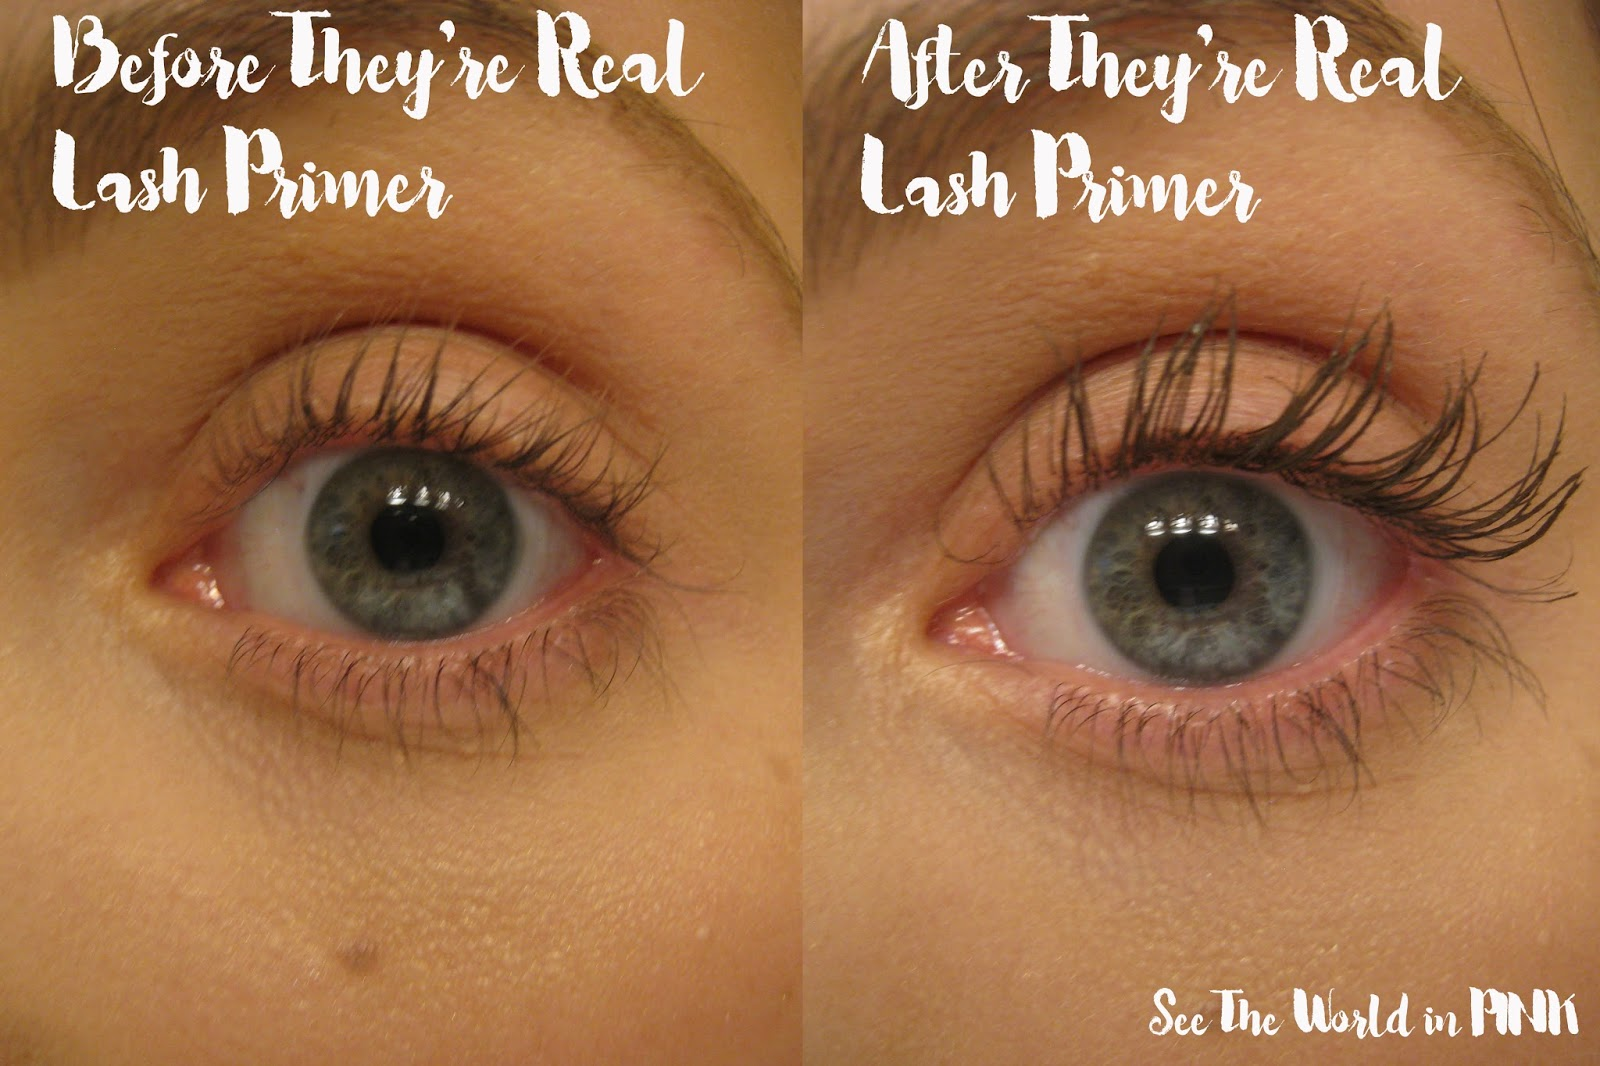 19132beb645 Makeup Product Review - NEW Benefit Cosmetics They're Real! Tinted Lash  Primer